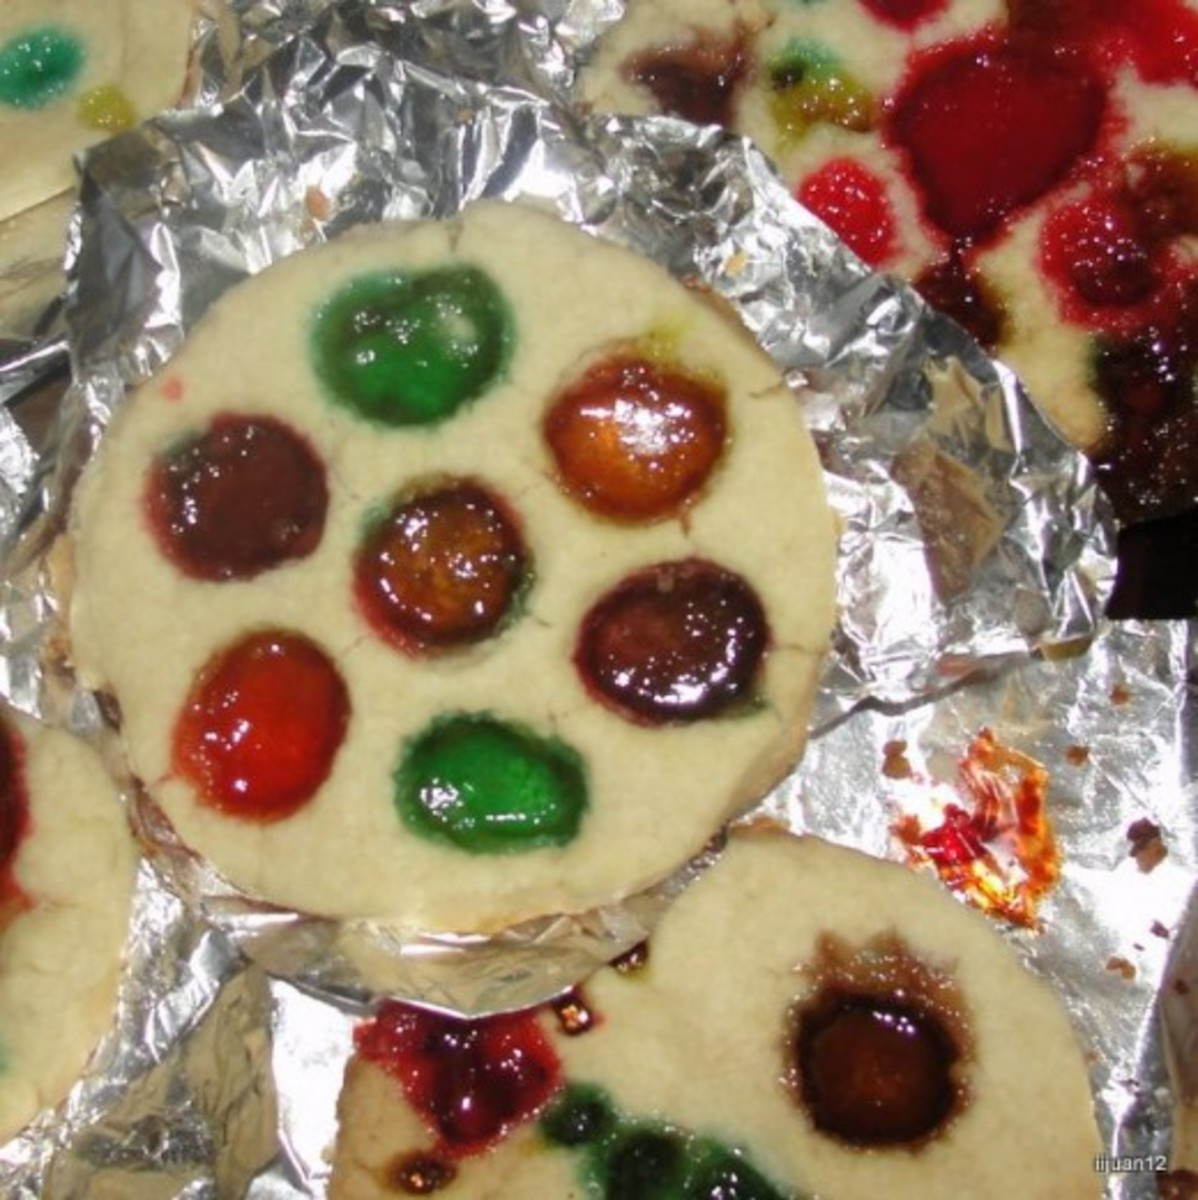 Creating & baking Stained Glass Window Cookies is one of the activities we did while learning more about the history sentence. You can see more at the above link: History Morning Basket & Activities.